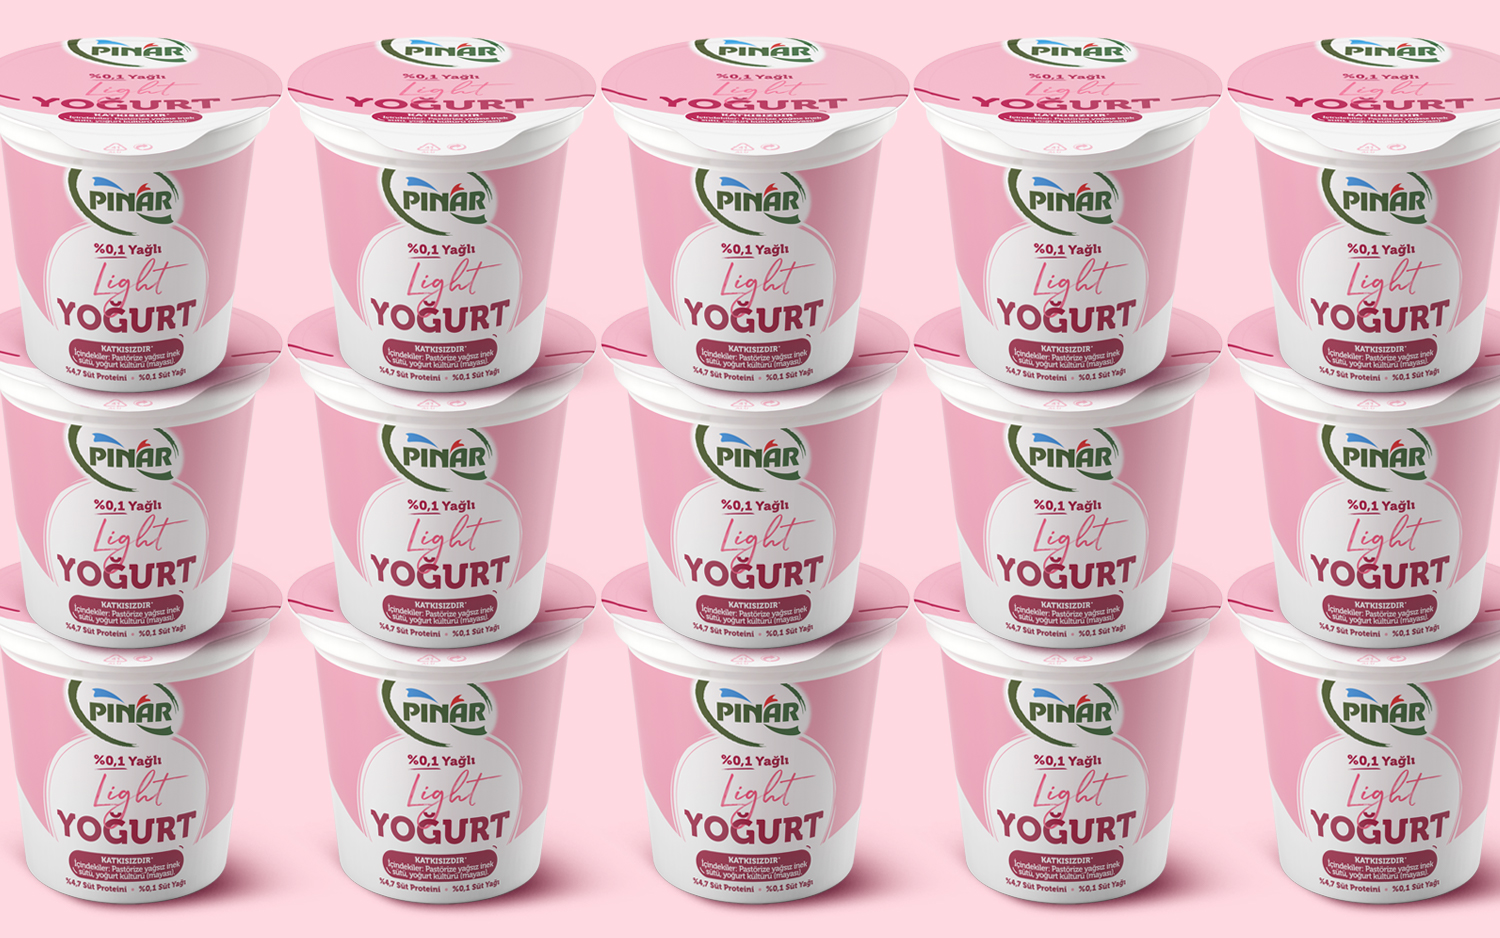 Pınar Light Yogurt Have Been Structured With the New Codes in Brand Architecture